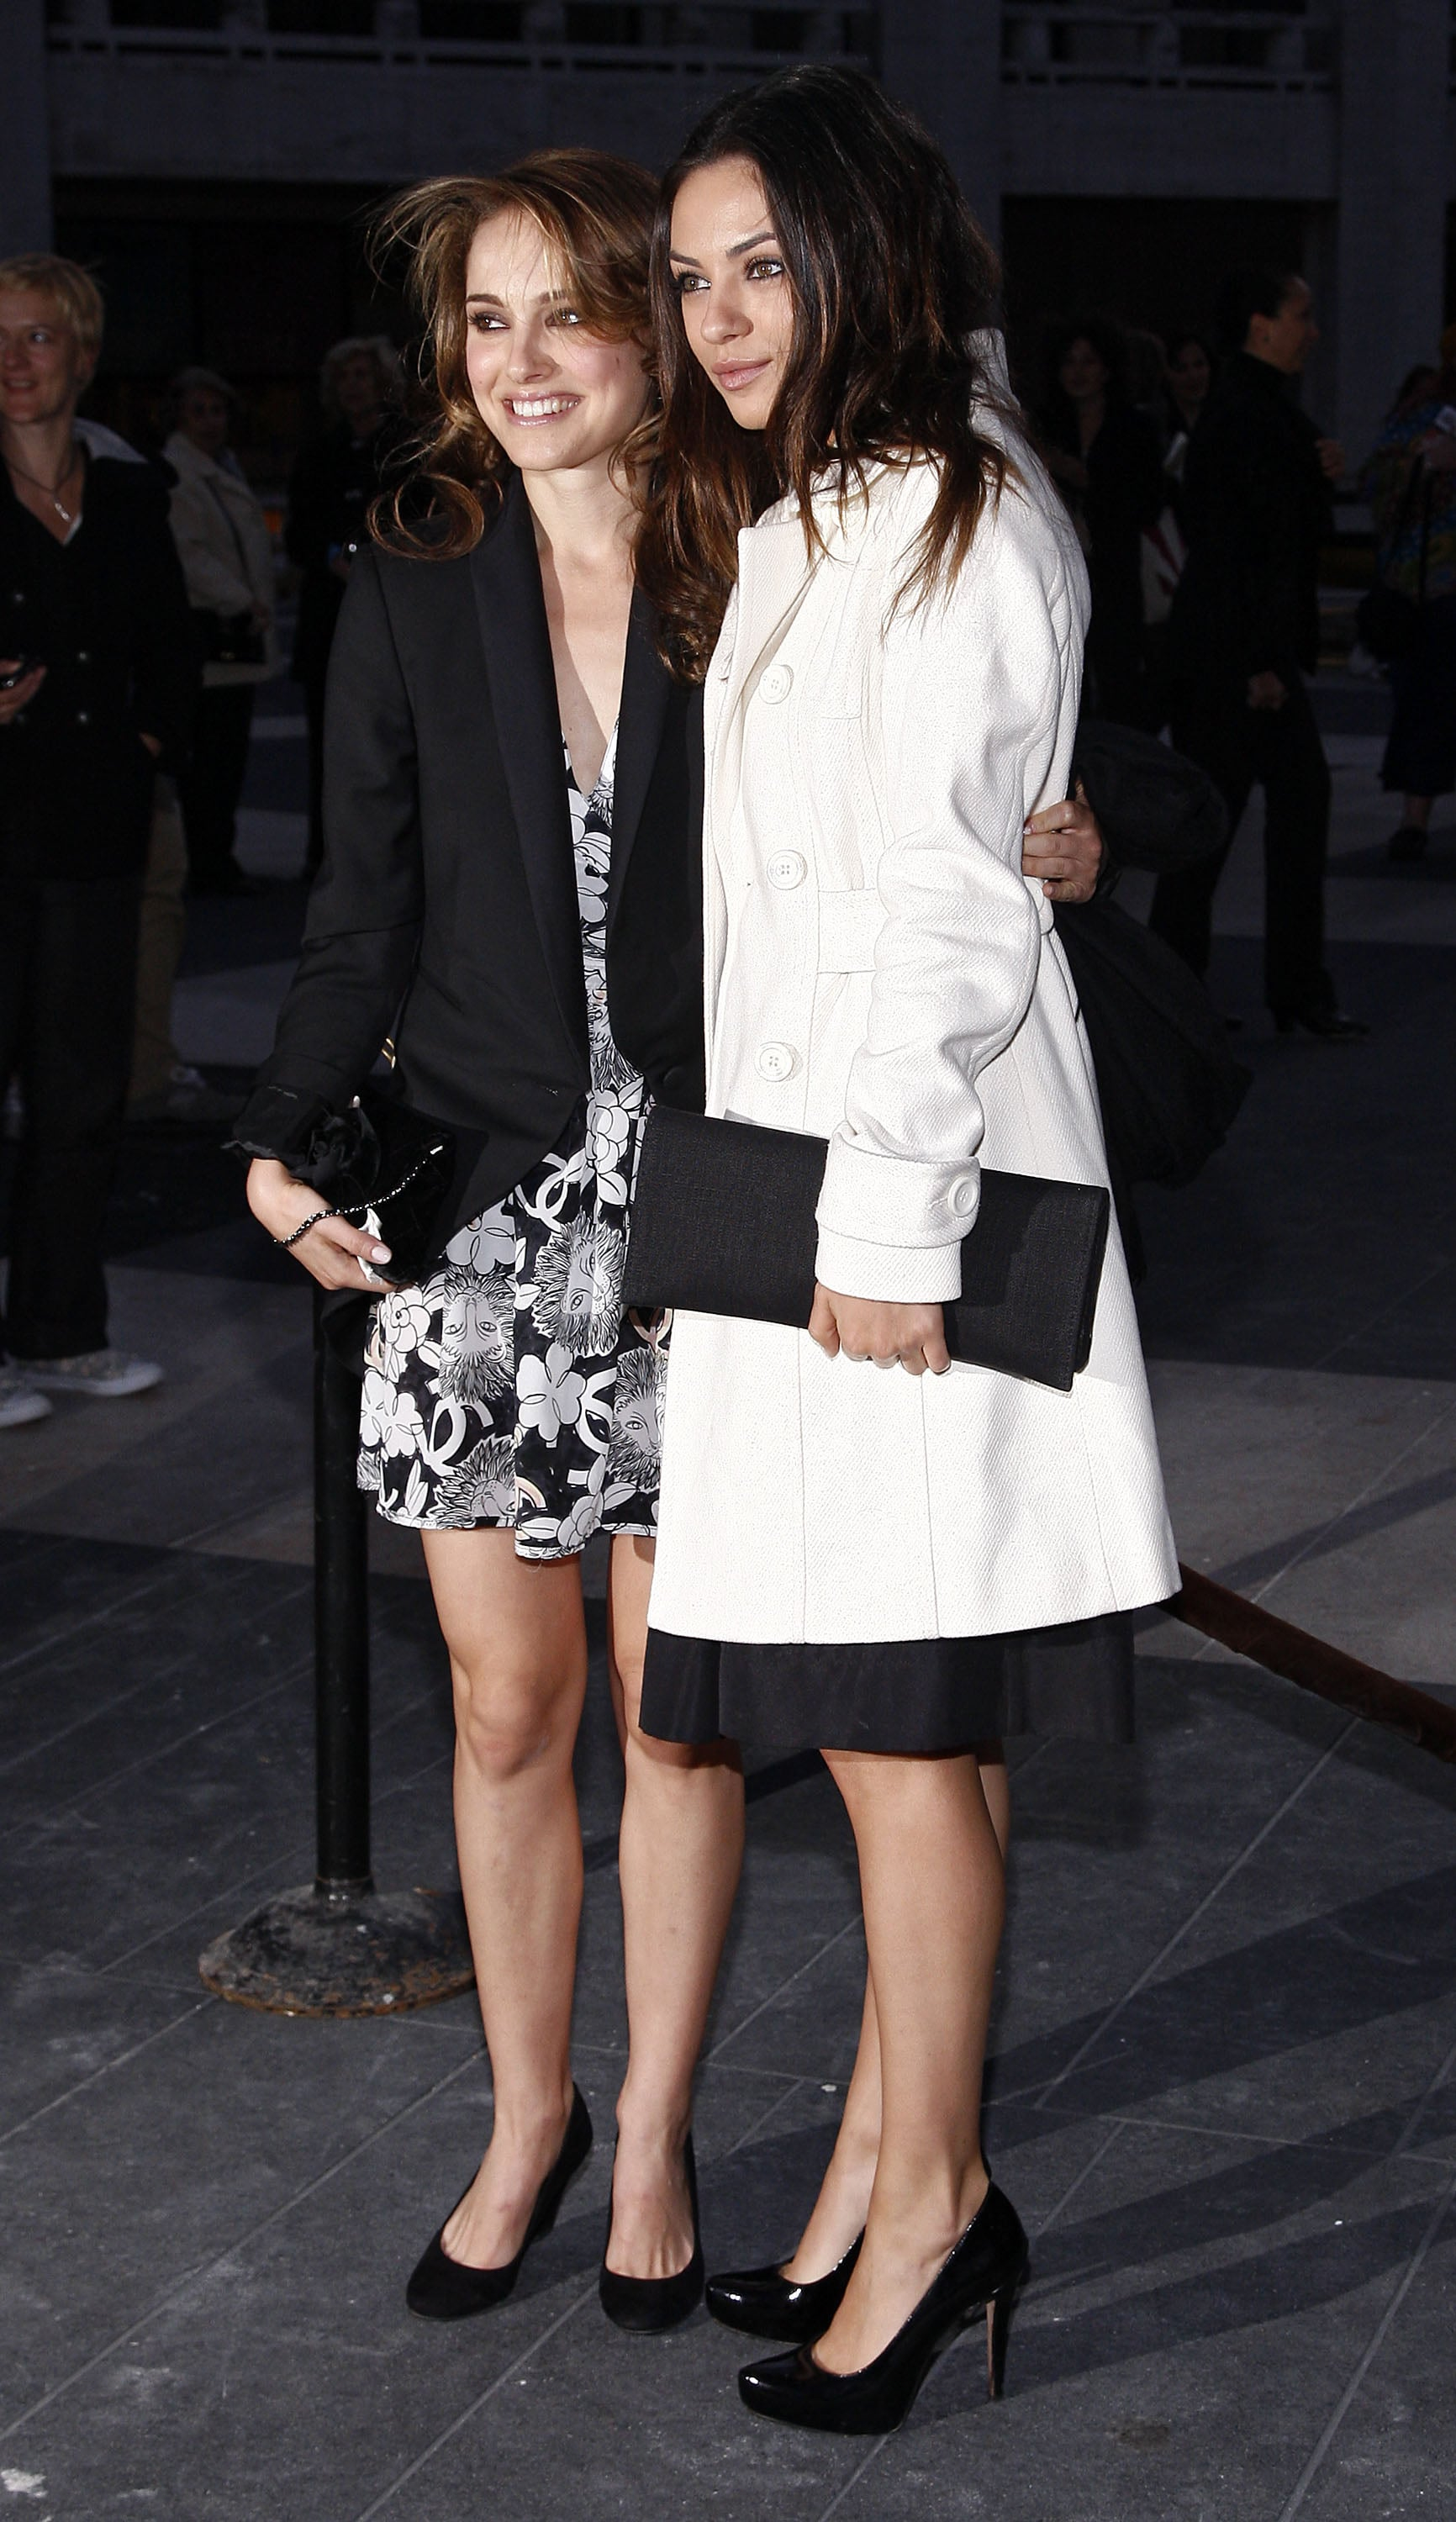 PopsugarCelebrityAdam DuritzPhotos of the New York Ballet Fall Gala Including Natalie Portman, Mila Kunis, Emmy Rossum and Adam DuritzMila, Natalie and Emmy Make It a Starlet-y Night at the NY BalletOctober 8, 2009 by Molly Goodson0 SharesChat with us on Facebook Messenger. Learn what's trending across POPSUGAR.It was a lovely evening for the ballet in NYC yesterday, as celebrities gathered at the Lincoln Center for the Fall Gala. Mila Kunis posed pretty with Natalie Portman, who is having quite the cultured week in the city after checking out Jude Law's official opening at Hamlet on Tuesday. The girls are starring as rival ballet dancers in the upcoming thriller Black Swan, so it's all in the name of research for Mila and Natalie. Emmy Rossum may be in the midst of divorcing her secret husband, but she's still happy to step out with her current boyfriend, Counting Crows's Adam Duritz. He has quite the history with beautiful women — Jennifer Aniston or Mary-Louise Parker, anyone? Joanna Garcia also stood o - 웹